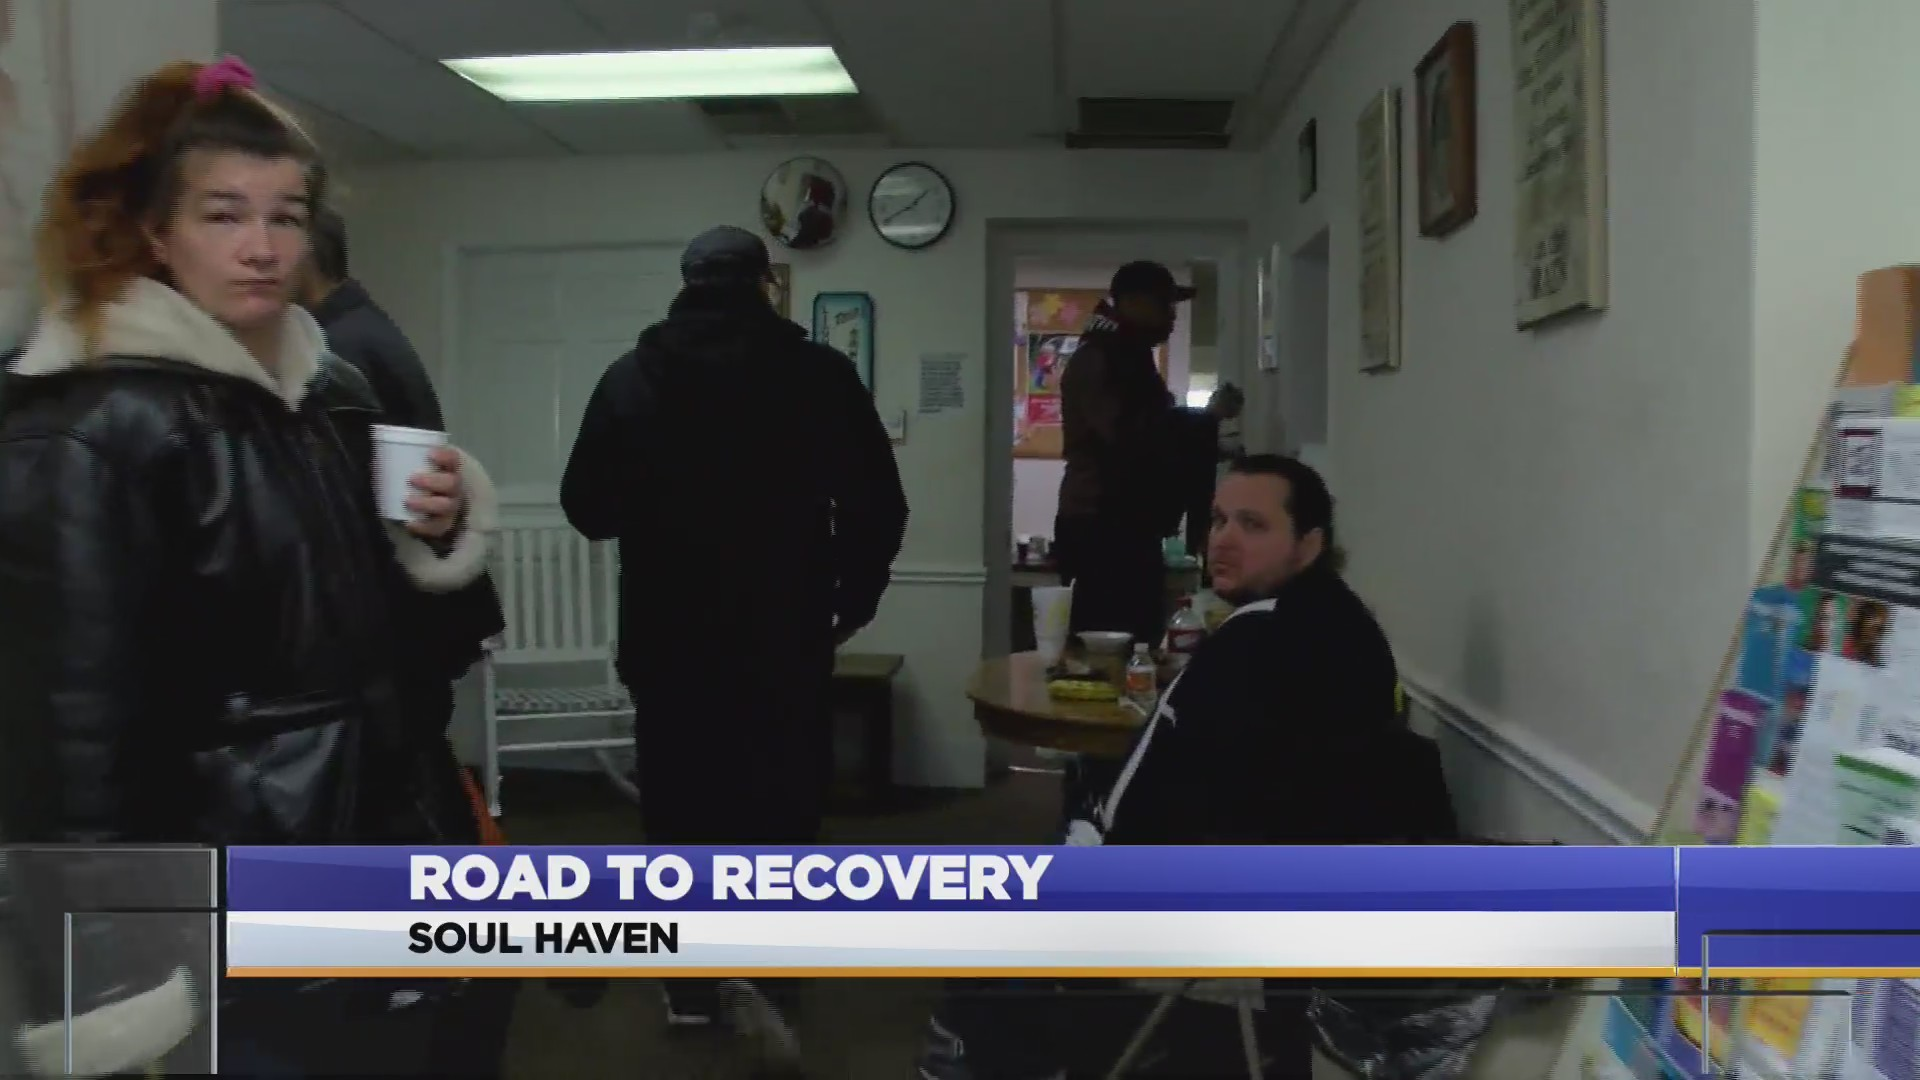 Alcoholics_in_Recovery_0_20180118000154